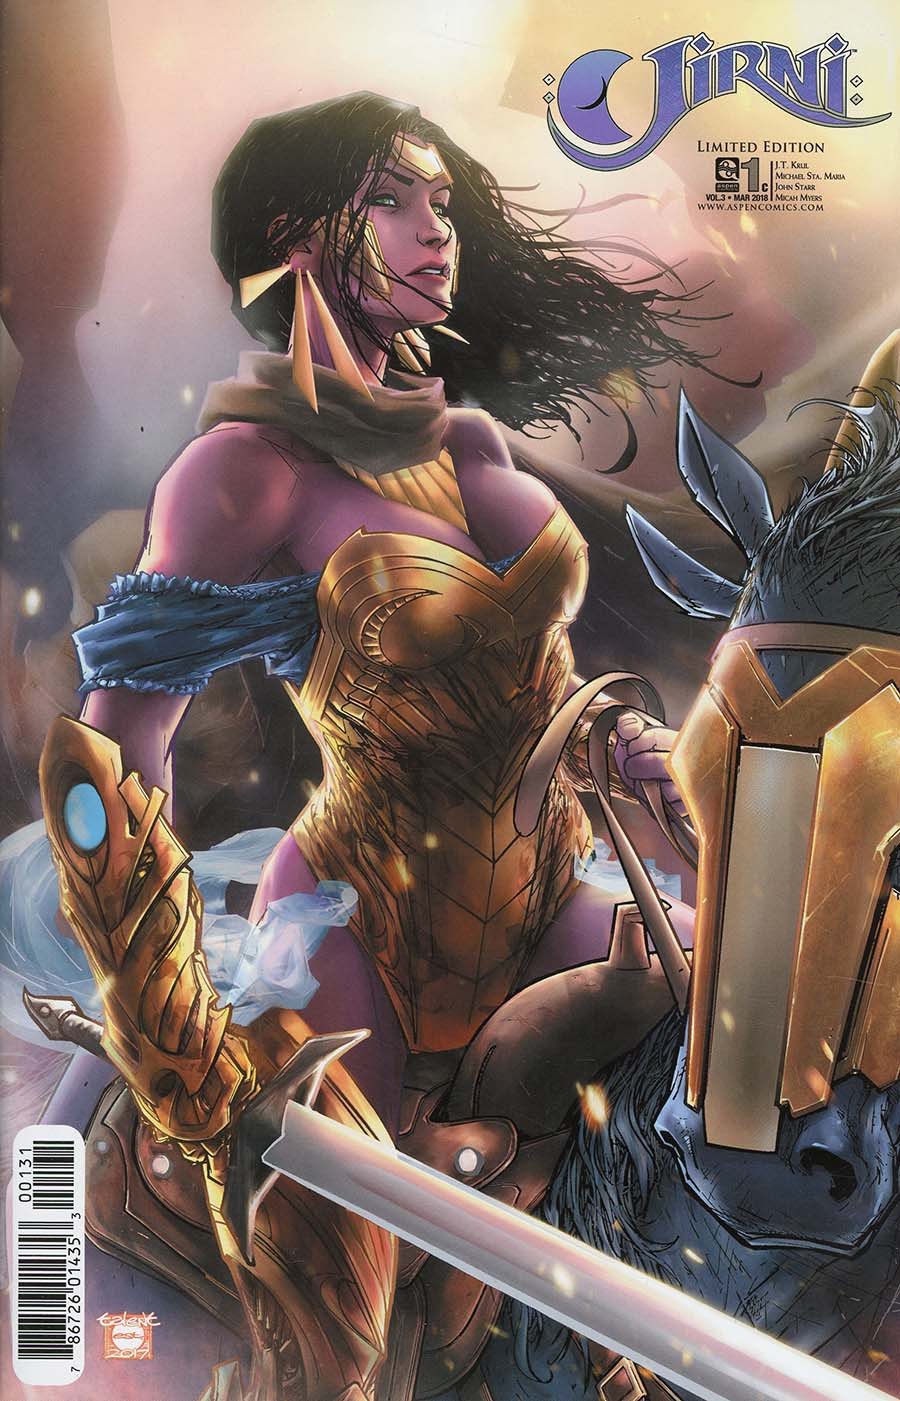 Jirni Vol 3 #1 Cover C Incentive Talent Caldwell Variant Cover